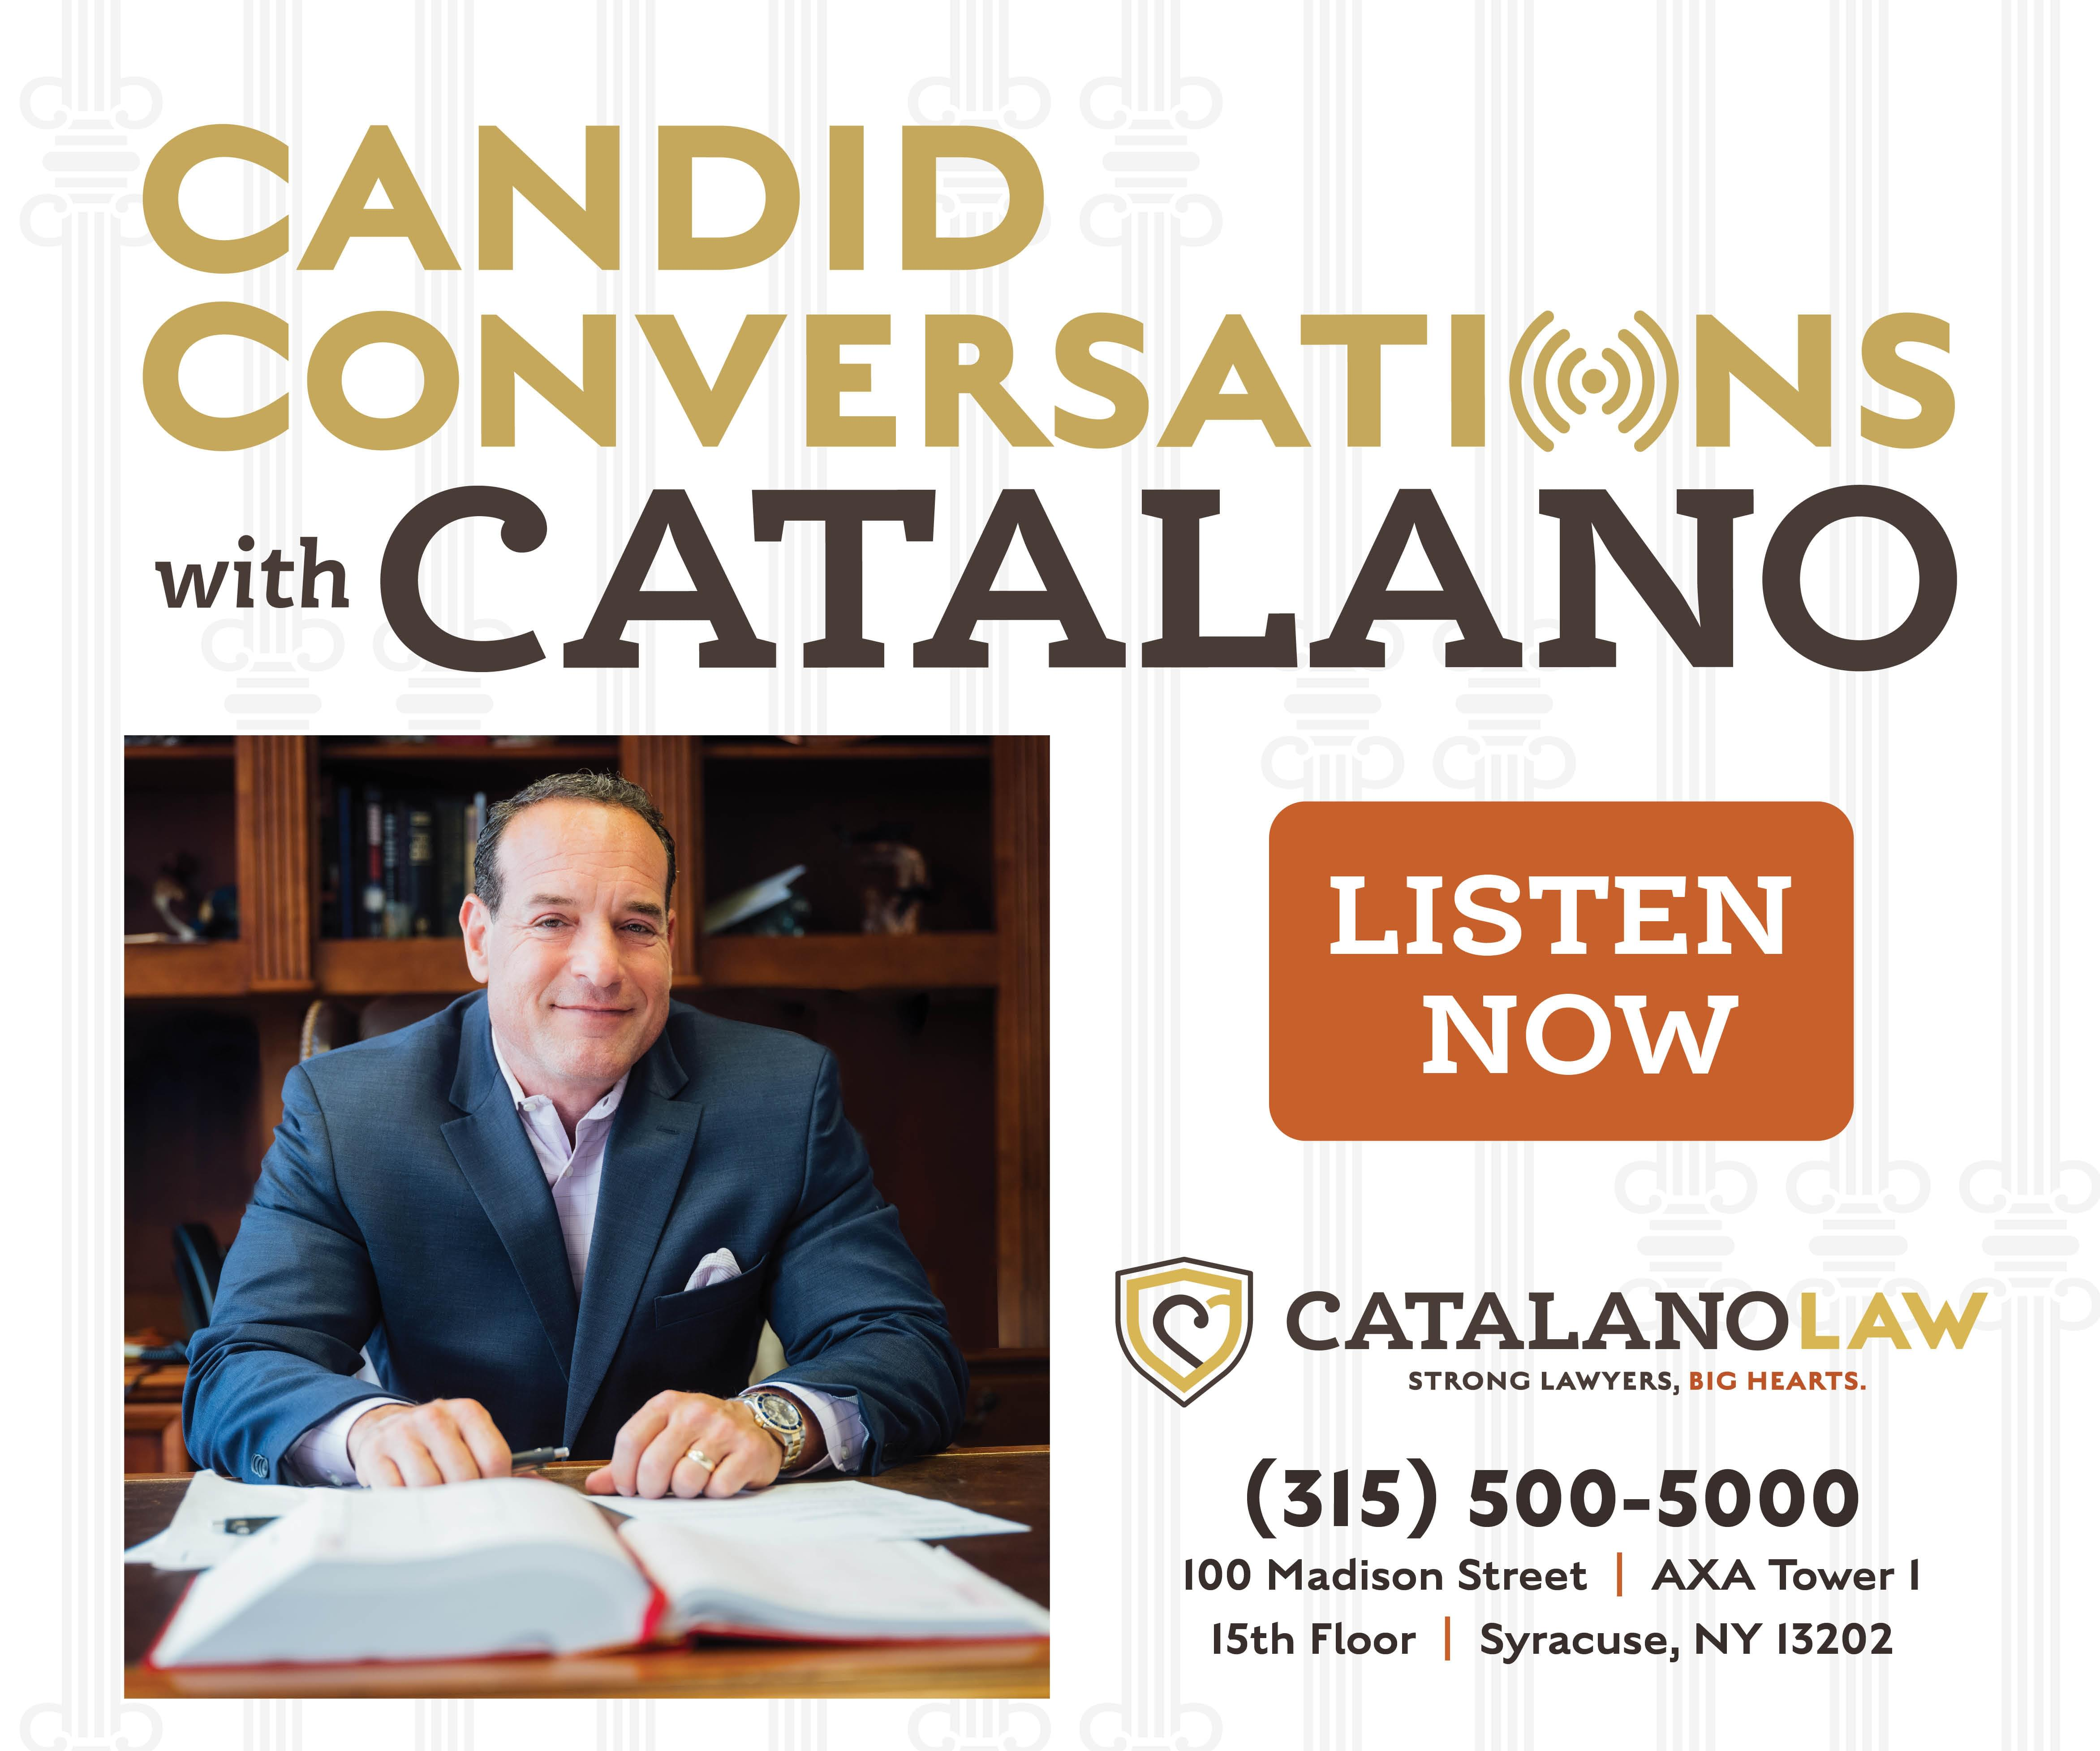 Candid Conversations with Catalano